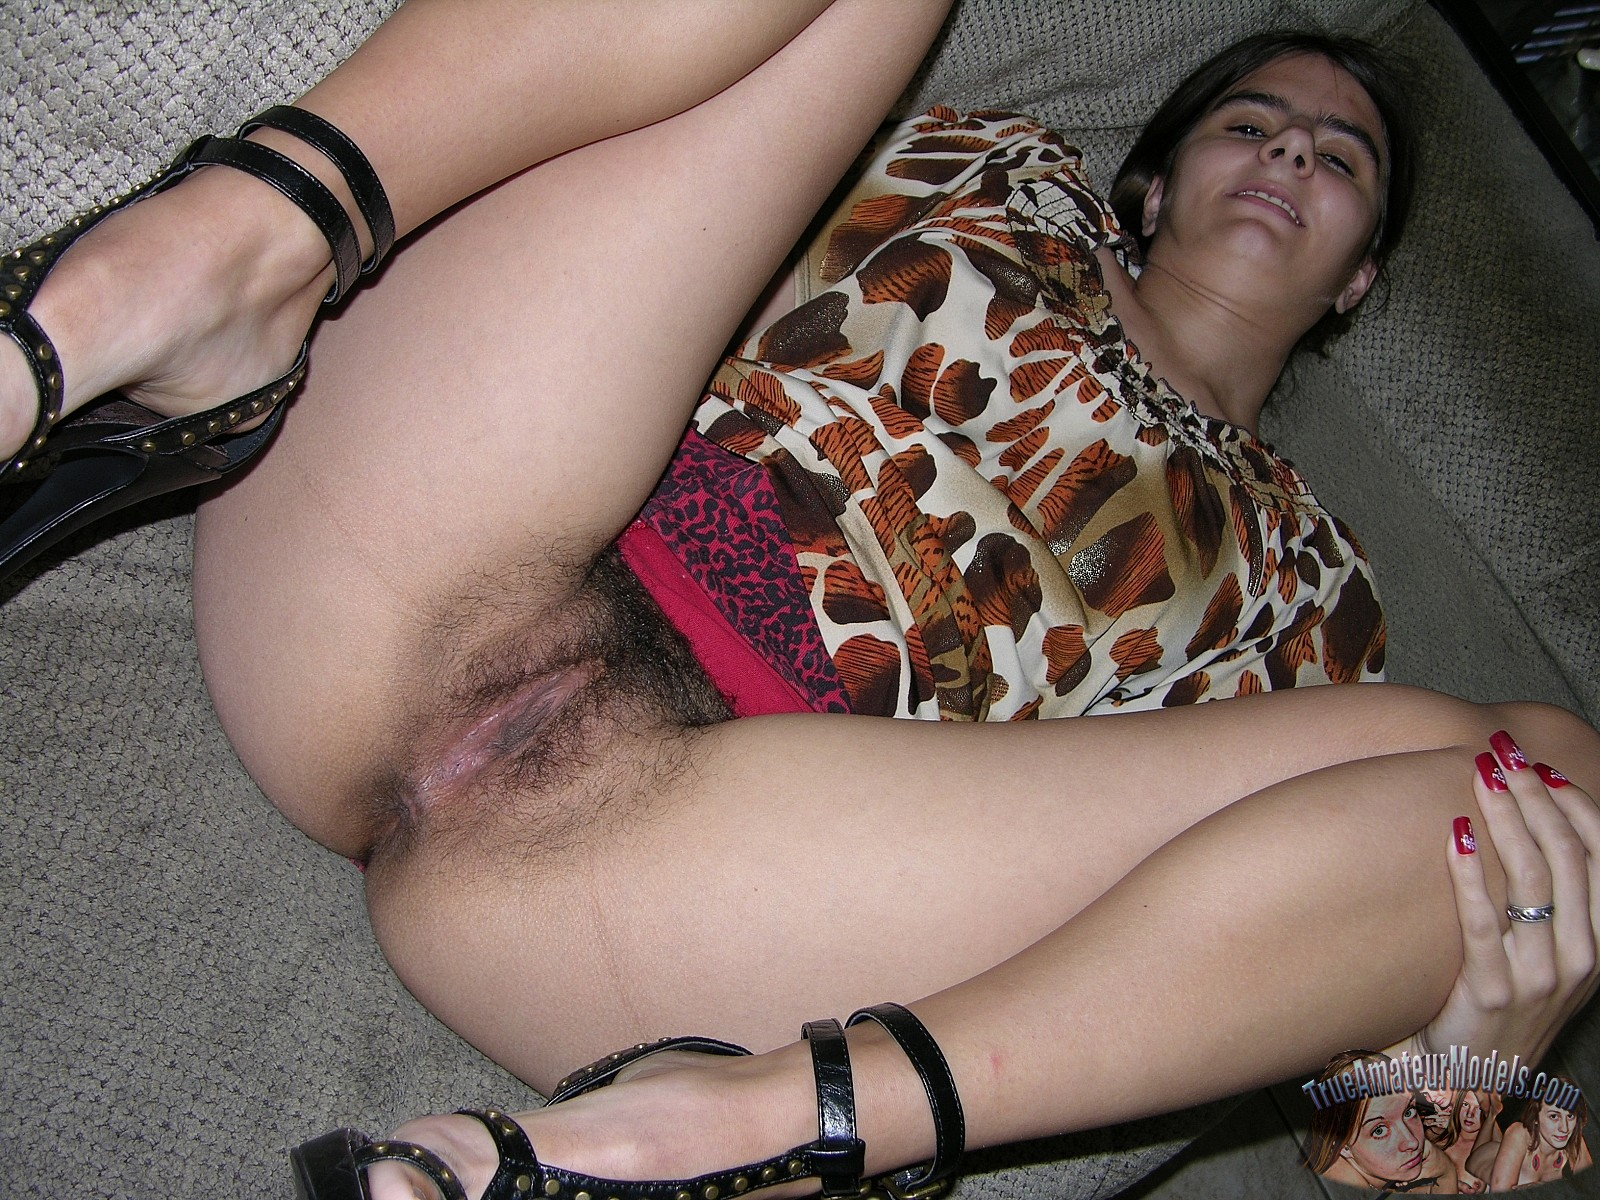 Can suggest Indian girl upskirt pussy think